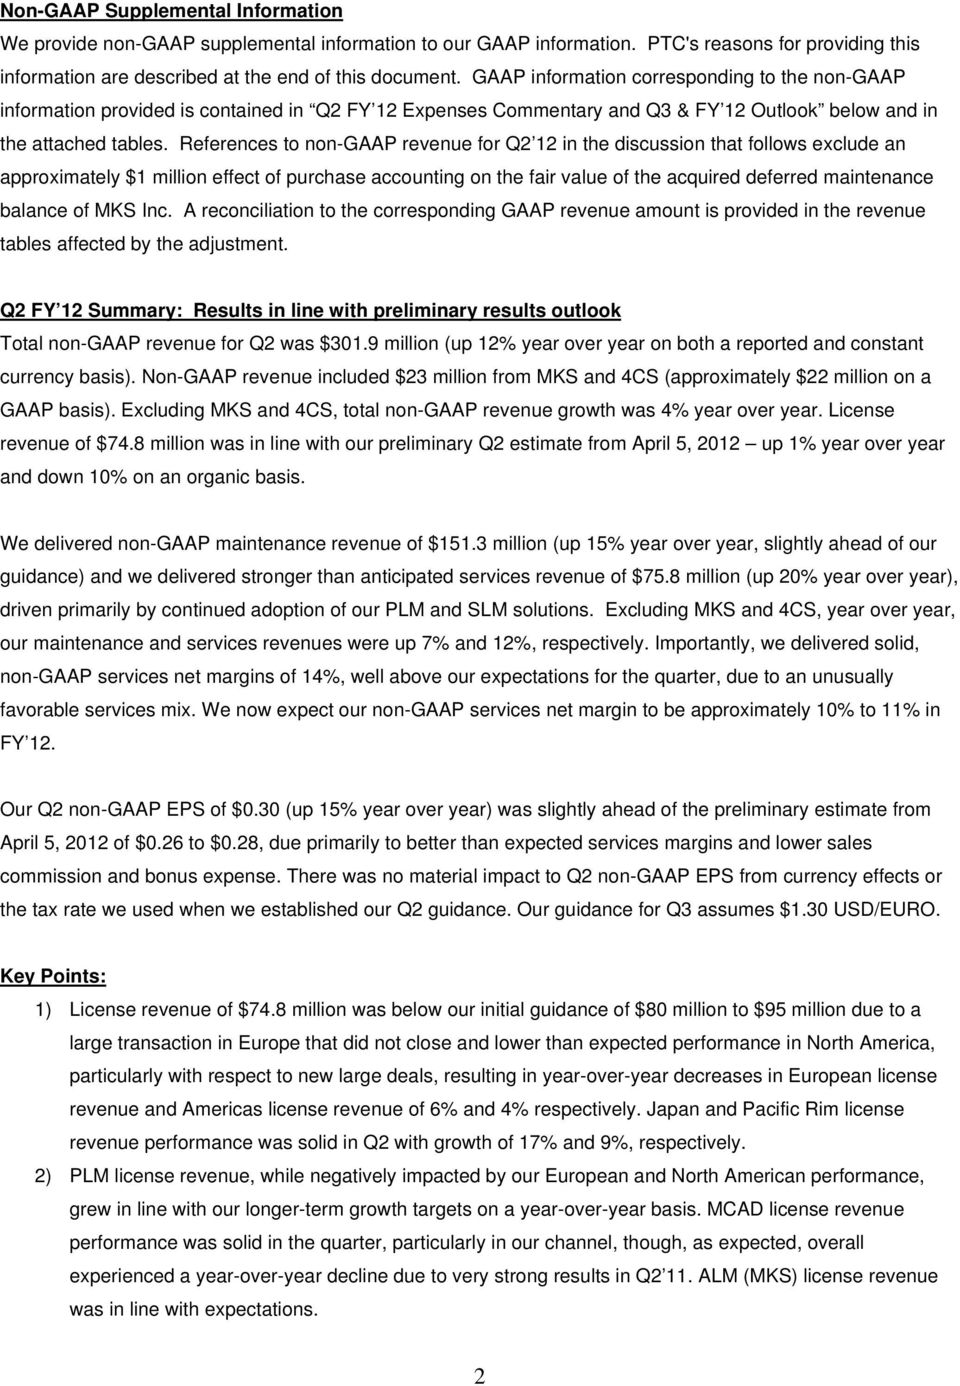 References to non-gaap revenue for Q2 12 in the discussion that follows exclude an approximately $1 million effect of purchase accounting on the fair value of the acquired deferred maintenance